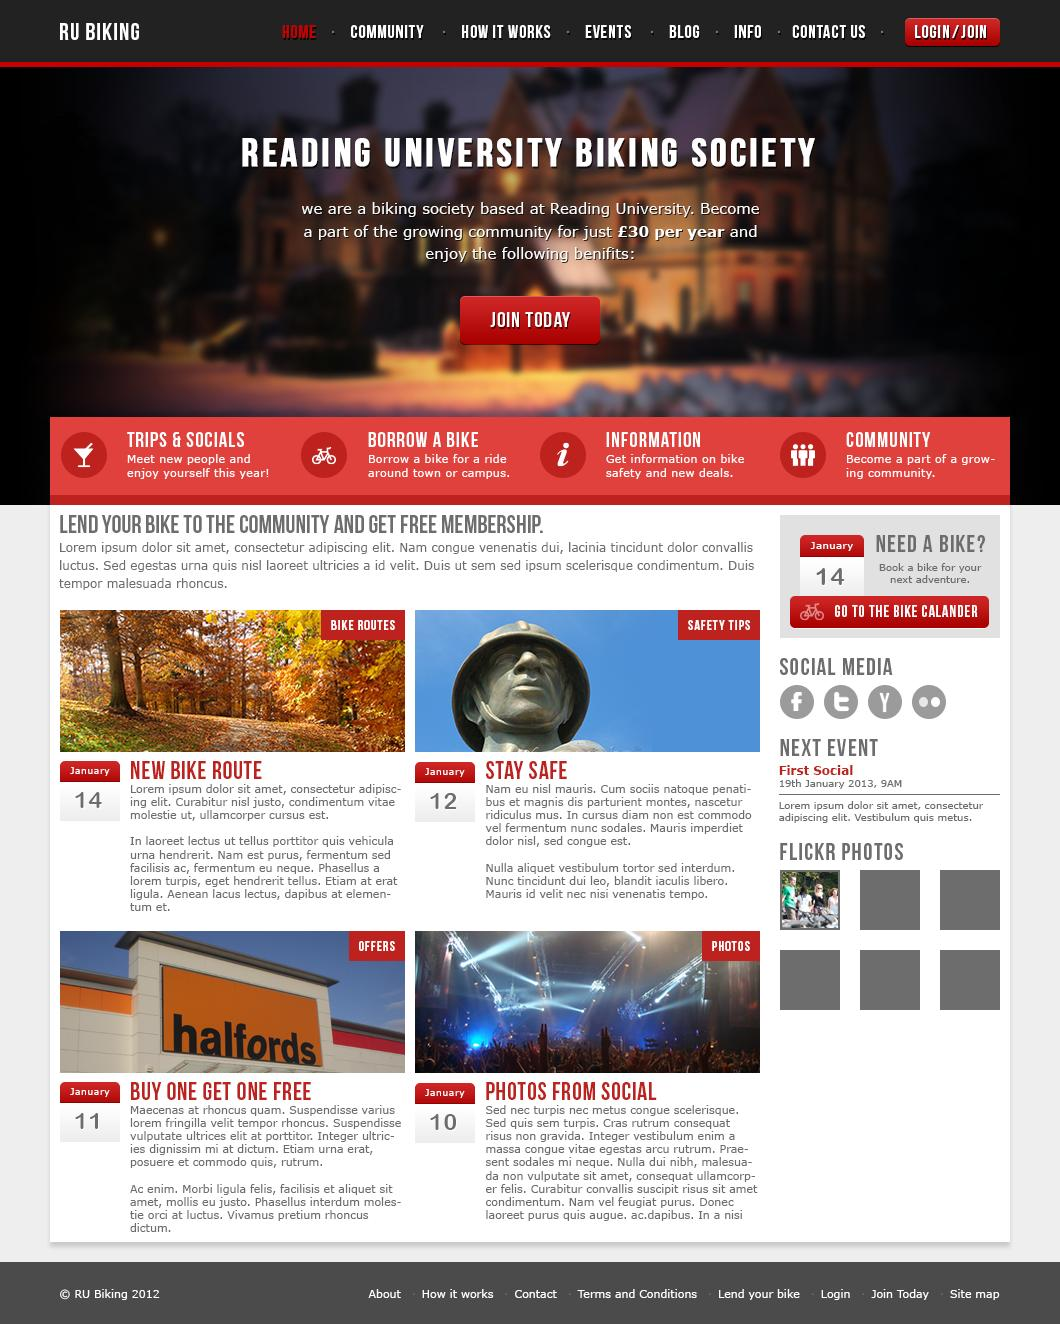 Professional Homepage Web Design / Redesign by Sonny1993 - 36386